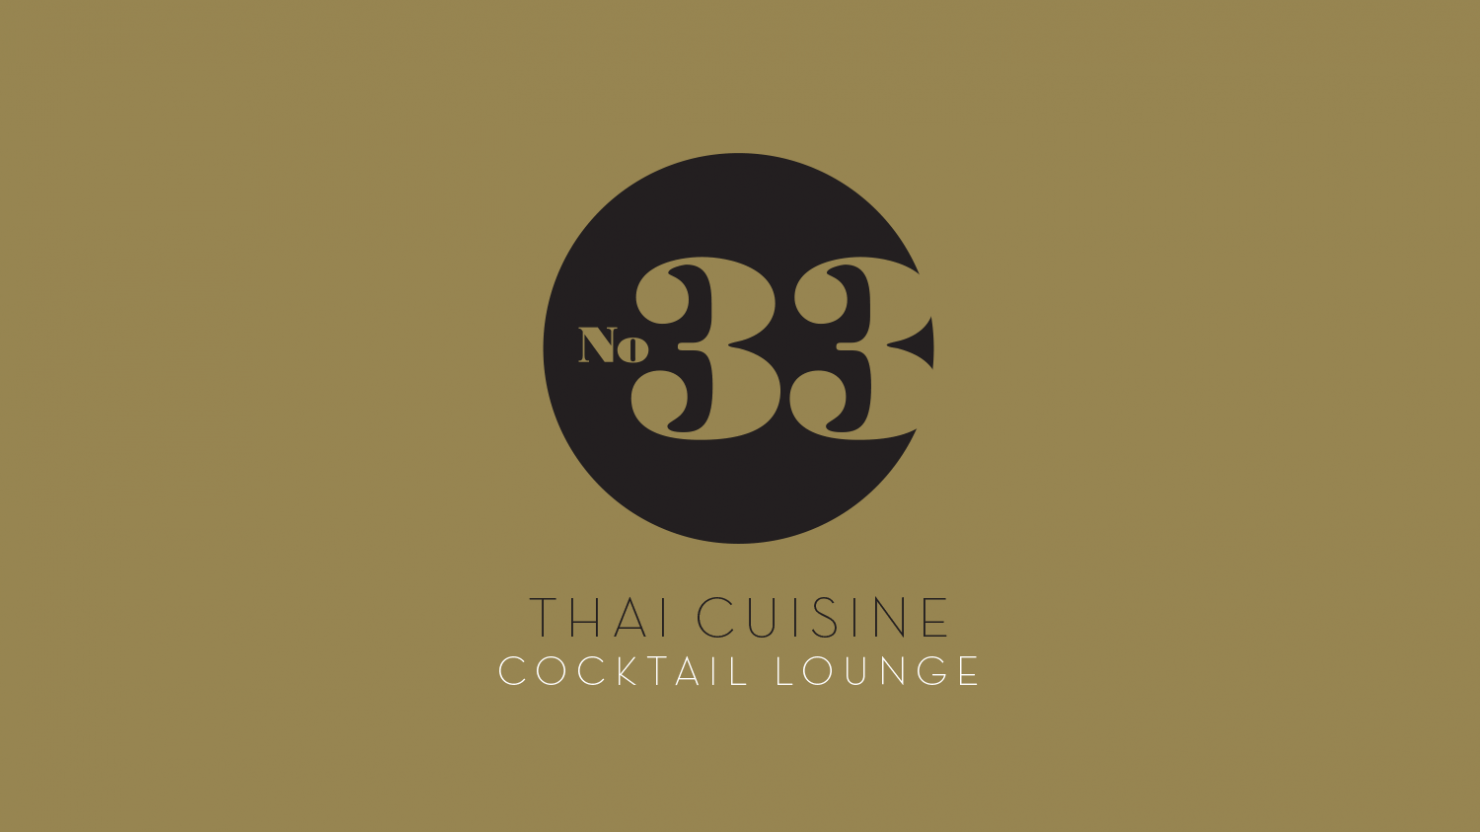 Example logo design for No. 33 Thai cuisine cocktail lounge bar restaurant Solihull